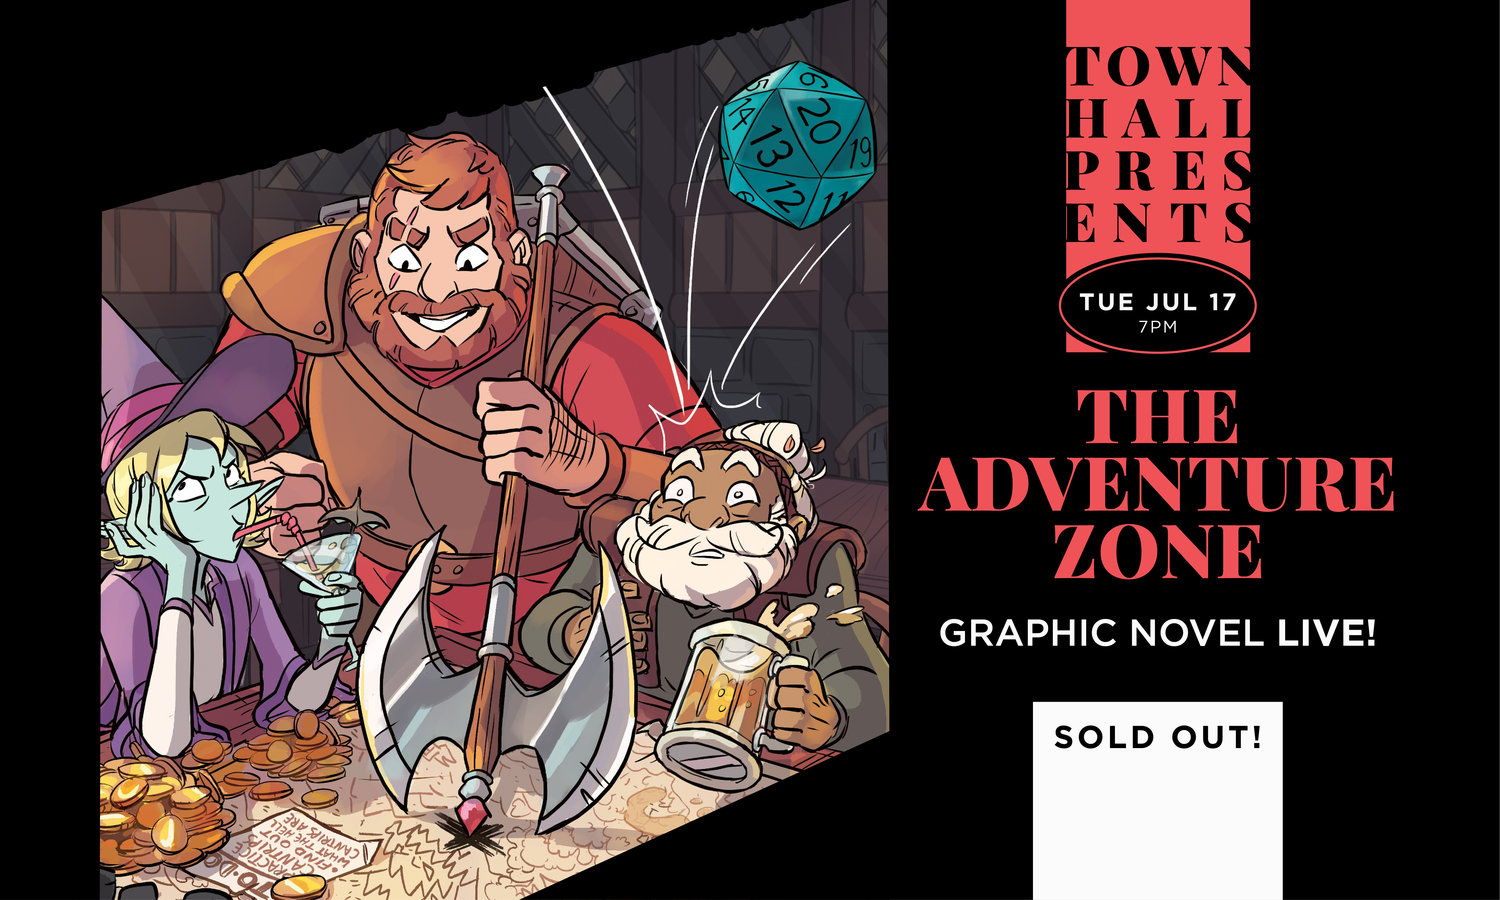 the adventure zone graphic novel live afterparty maxfun nyc